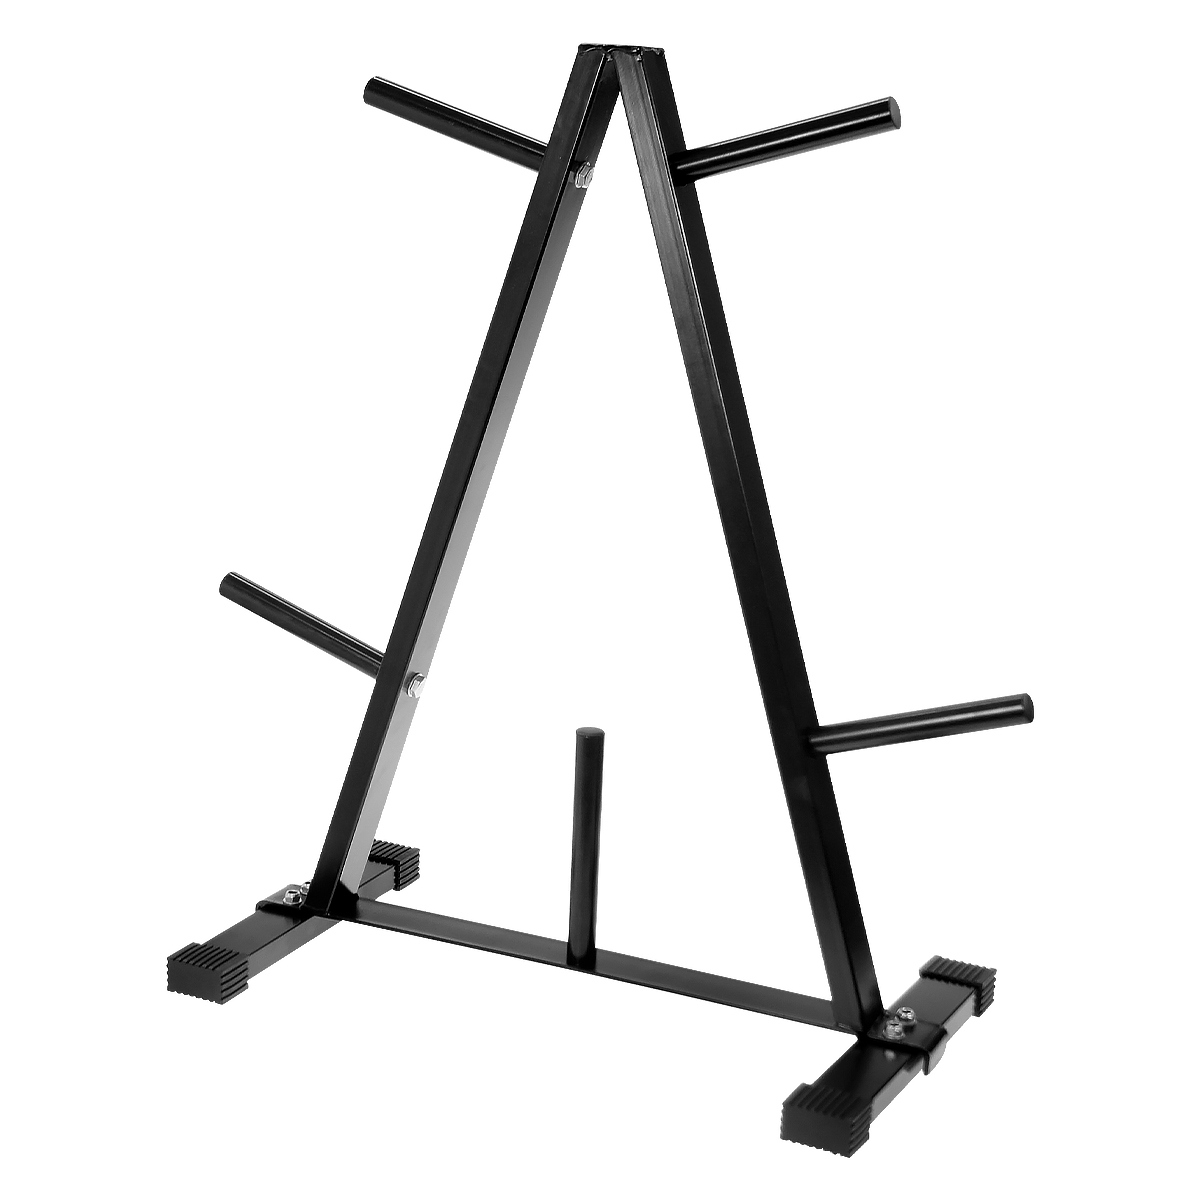 Free Weights Storage: Powertrain Weight Plates Storage Rack A-frame Holder